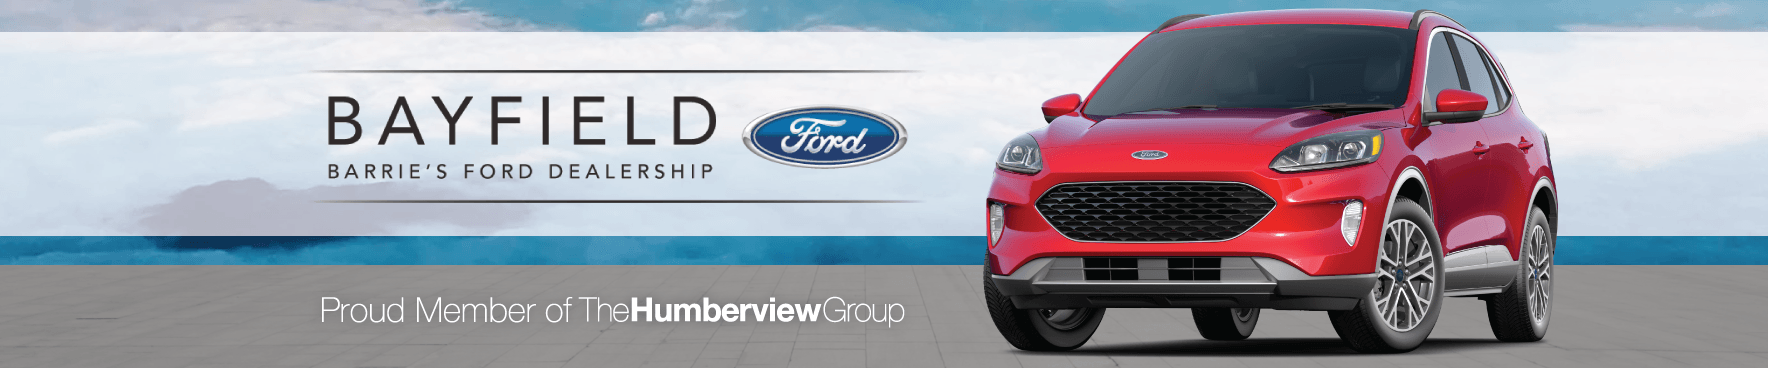 Bayfield Ford- Barrie's Ford Dealership